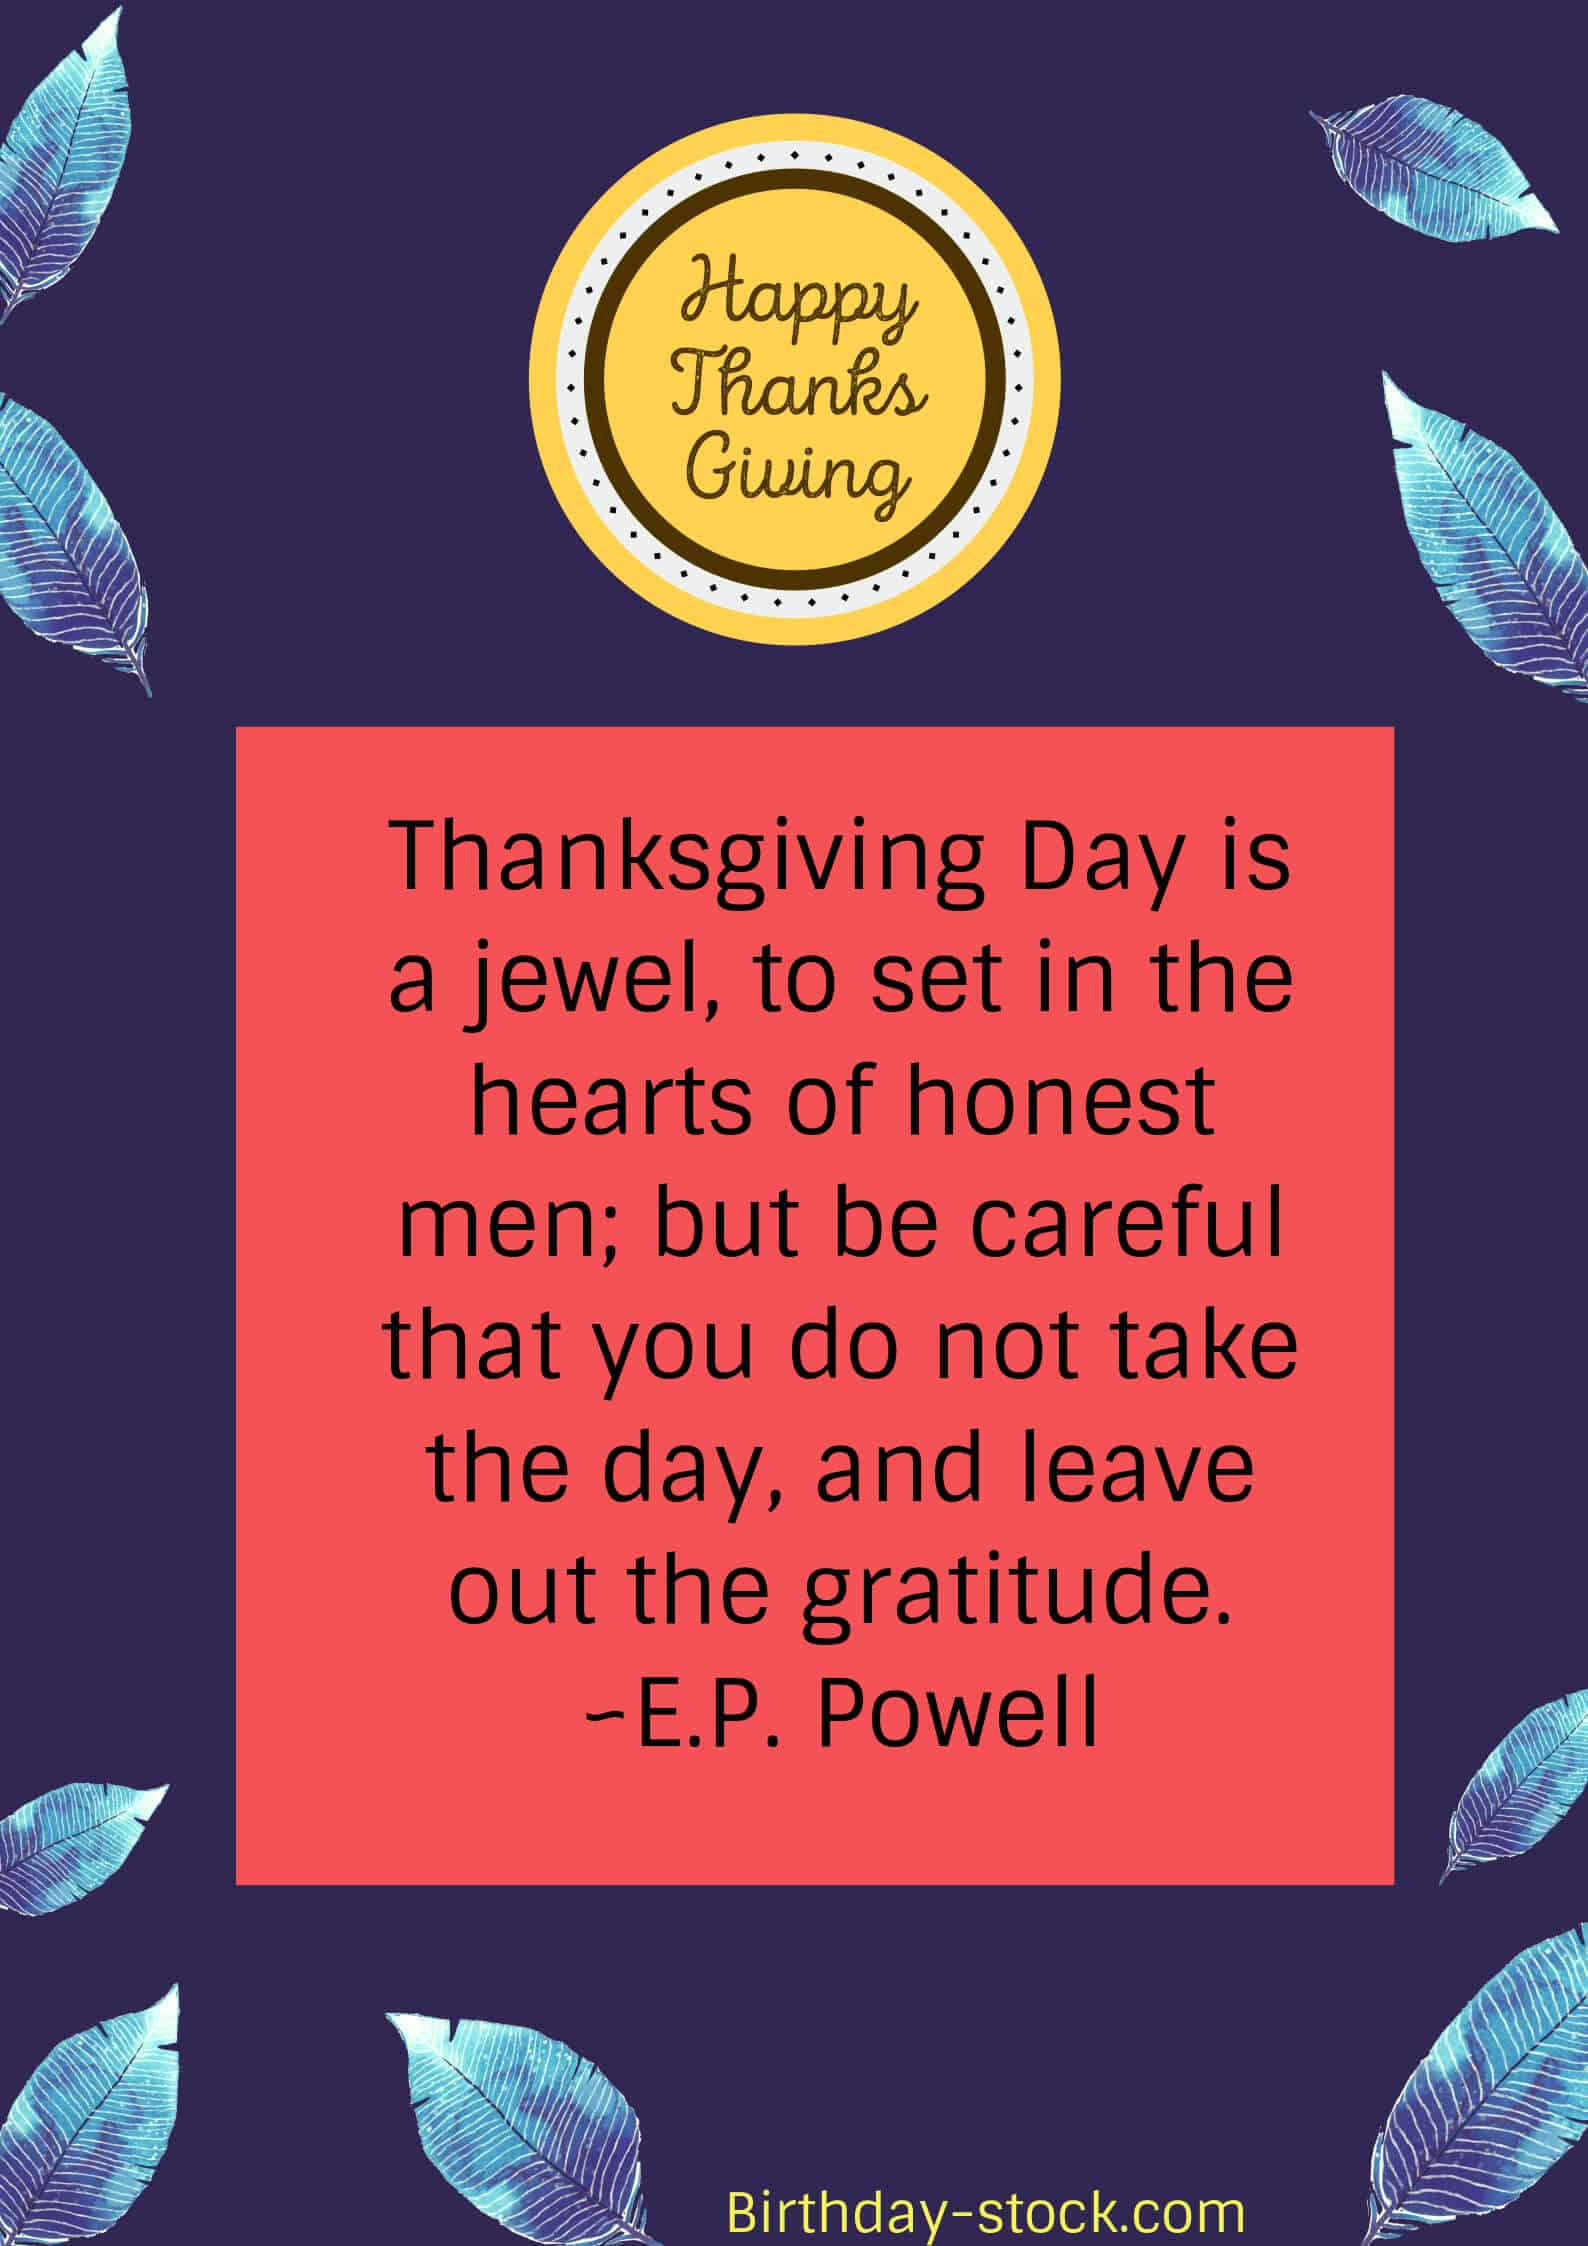 Best Happy Thanksgiving Quotes 2020 For Wishing Your Friends